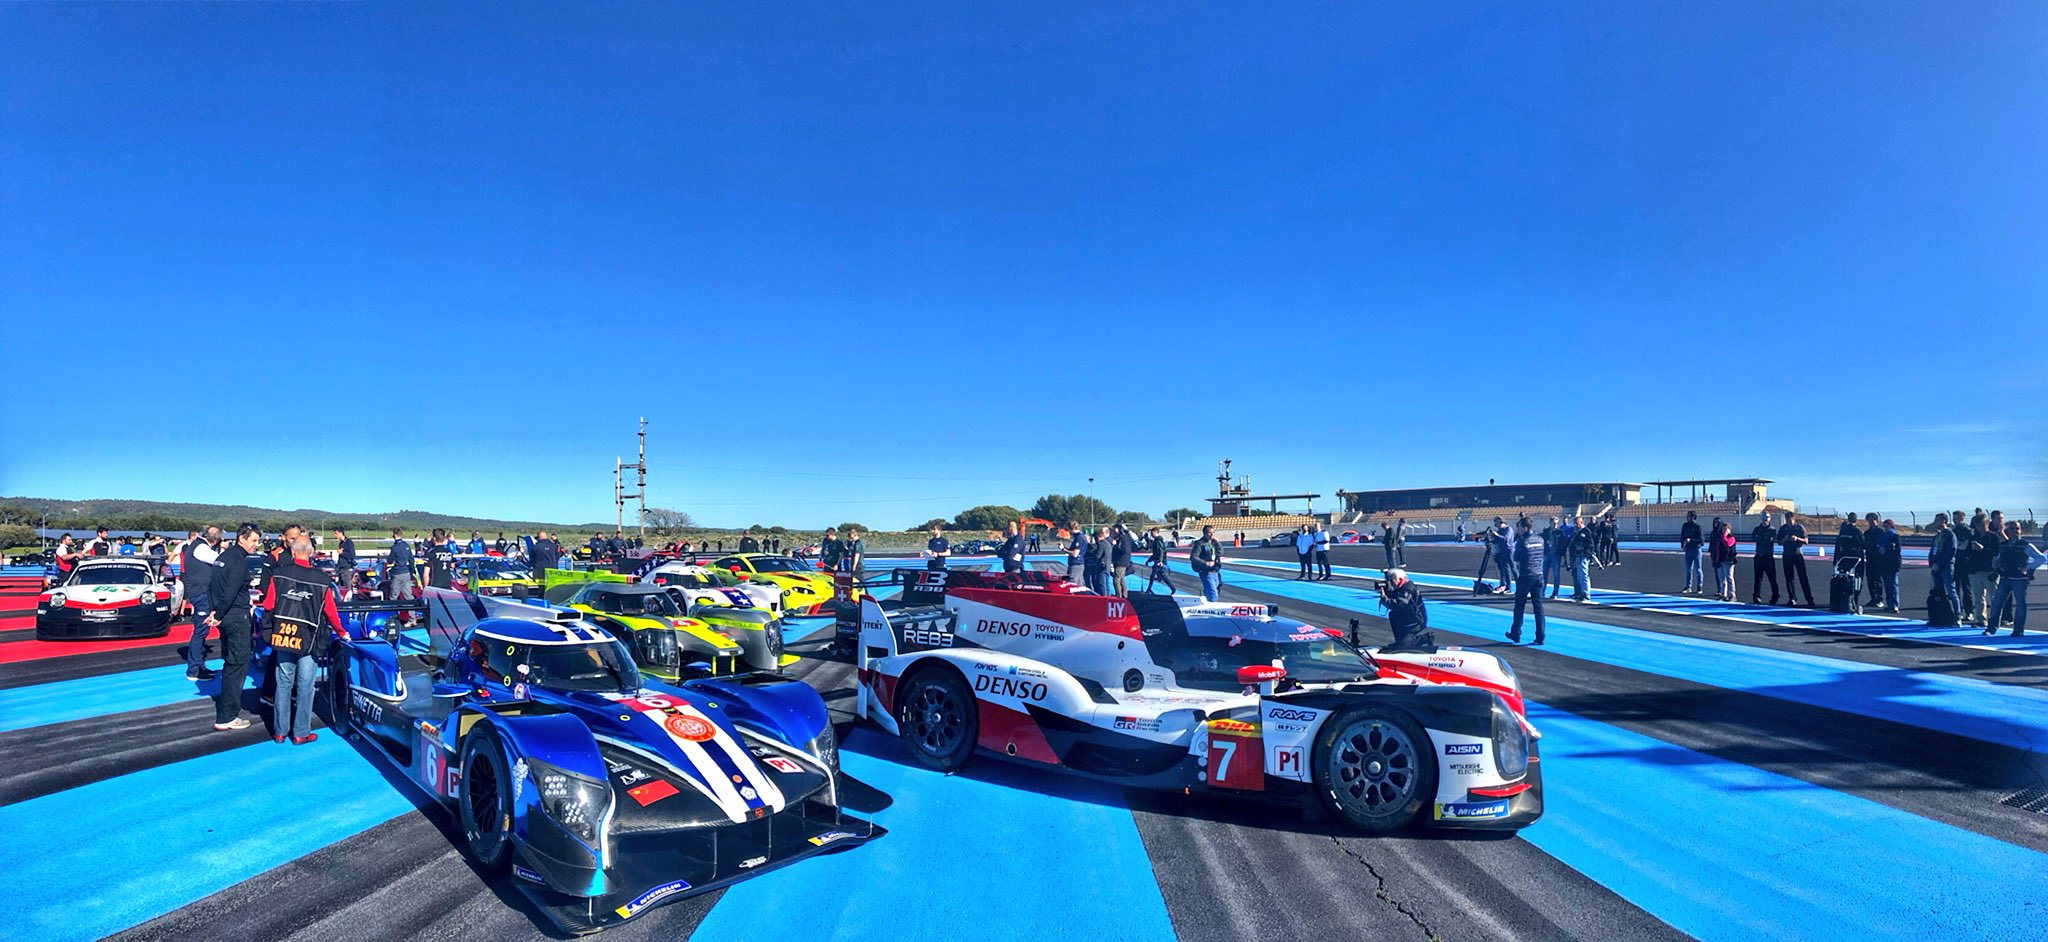 2018/2019 FIA WEC Prologue: 35 cars for Le Castellet shakedown